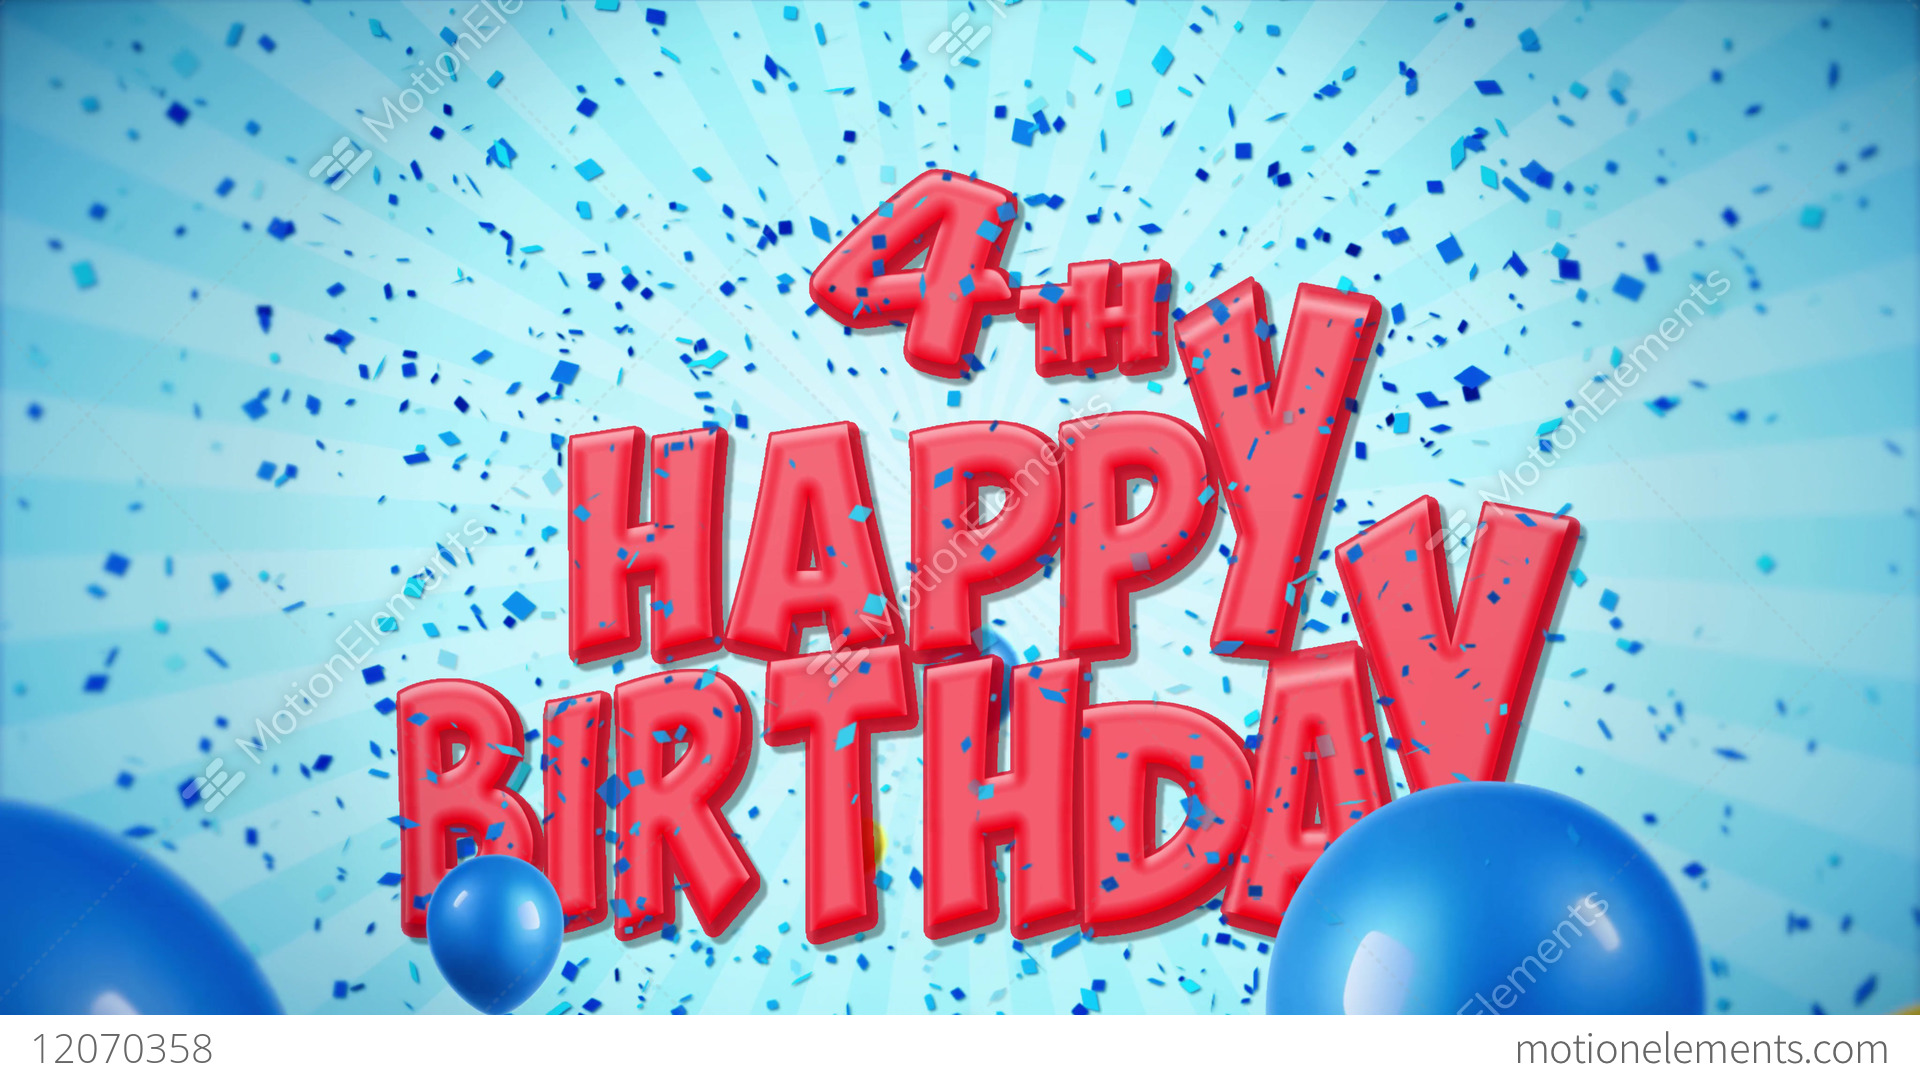 4th Happy Birthday Greeting And Wishes With Balloons Stock Video Footage